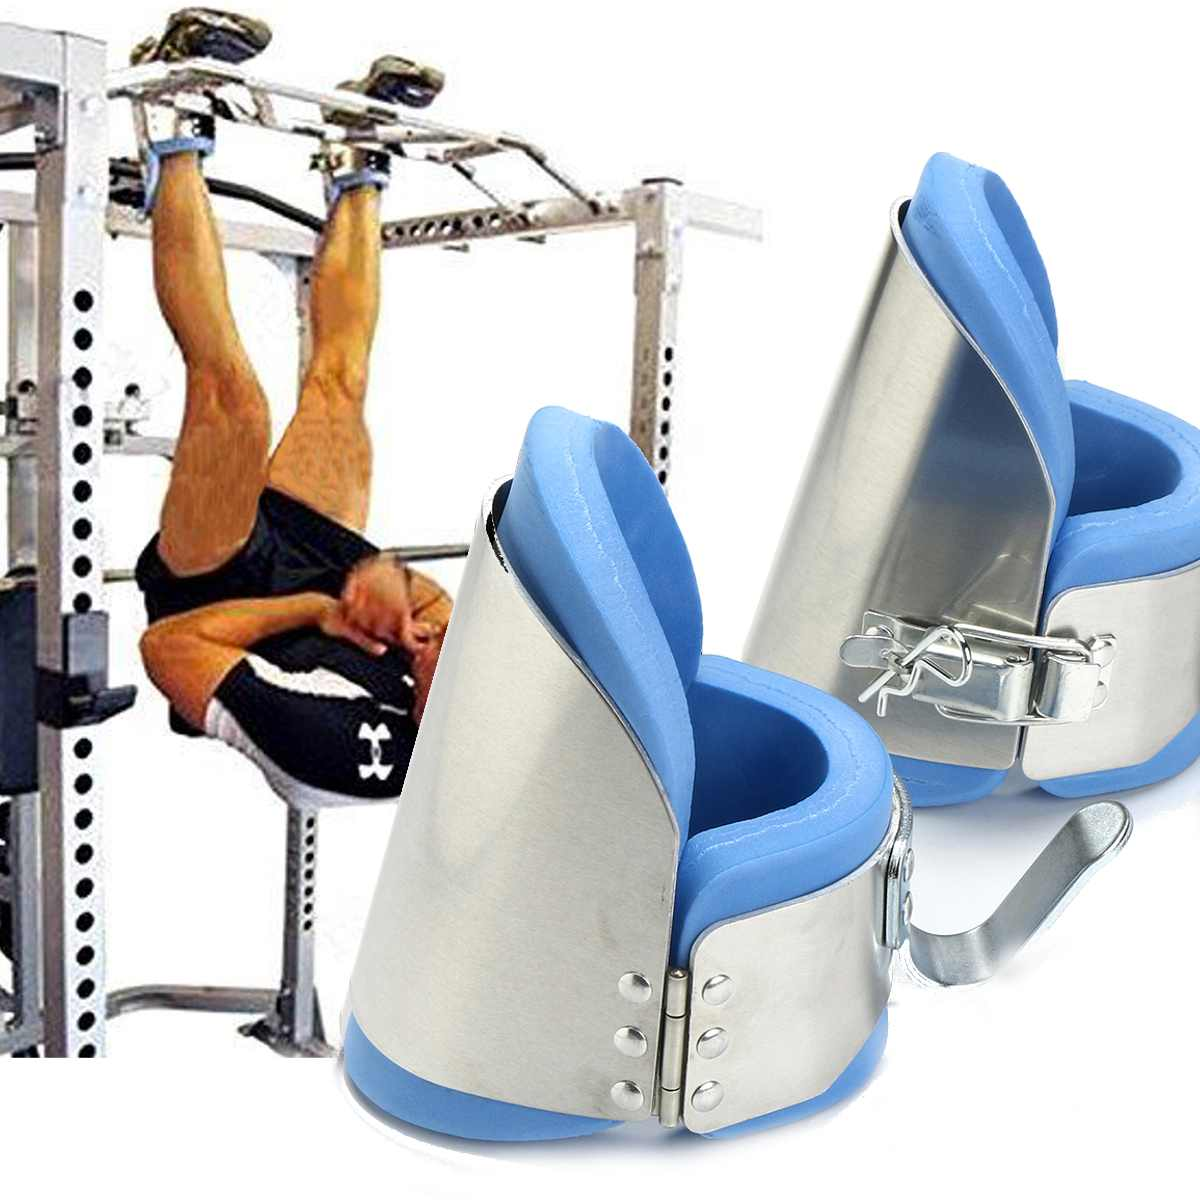 Inversion Gravity Boots Strength Training Hanging Blood Circulation & Bone Growth Hang Up Shoes For Spine Relax And Stretch